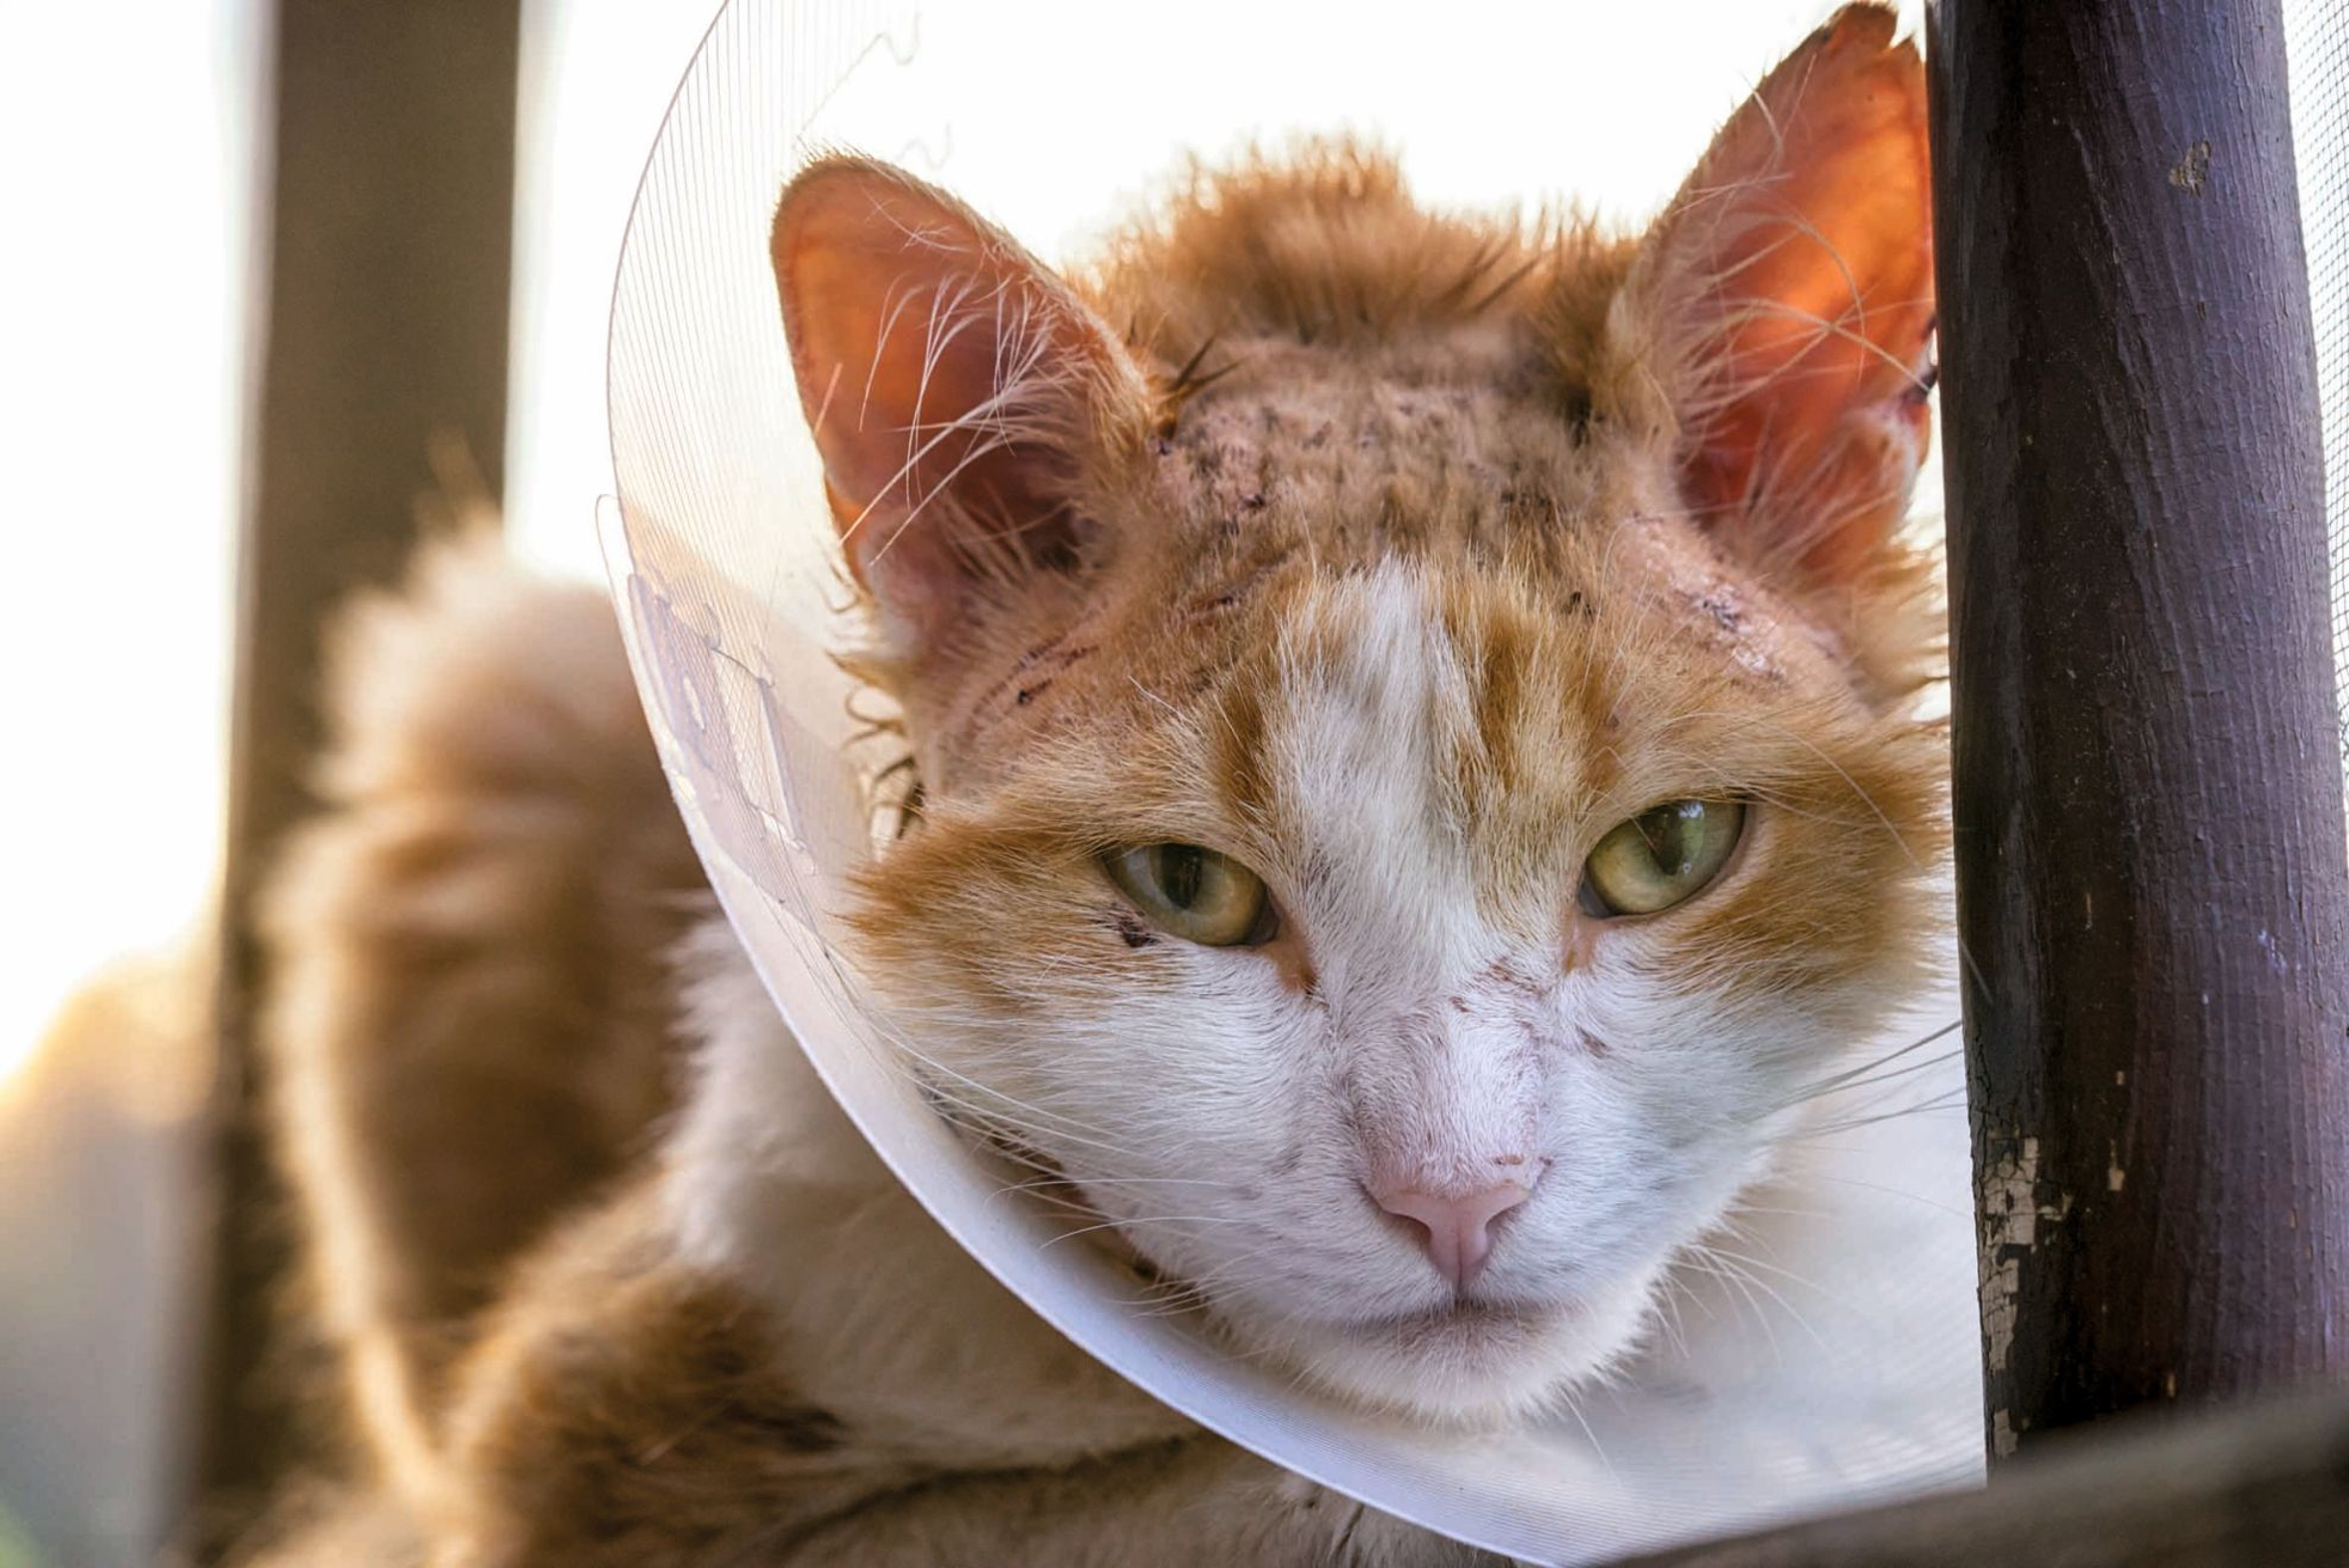 An Elizabethan collar may be useful to prevent a cat from inflicting self-trauma due to pruritus resulting from a skin problem.